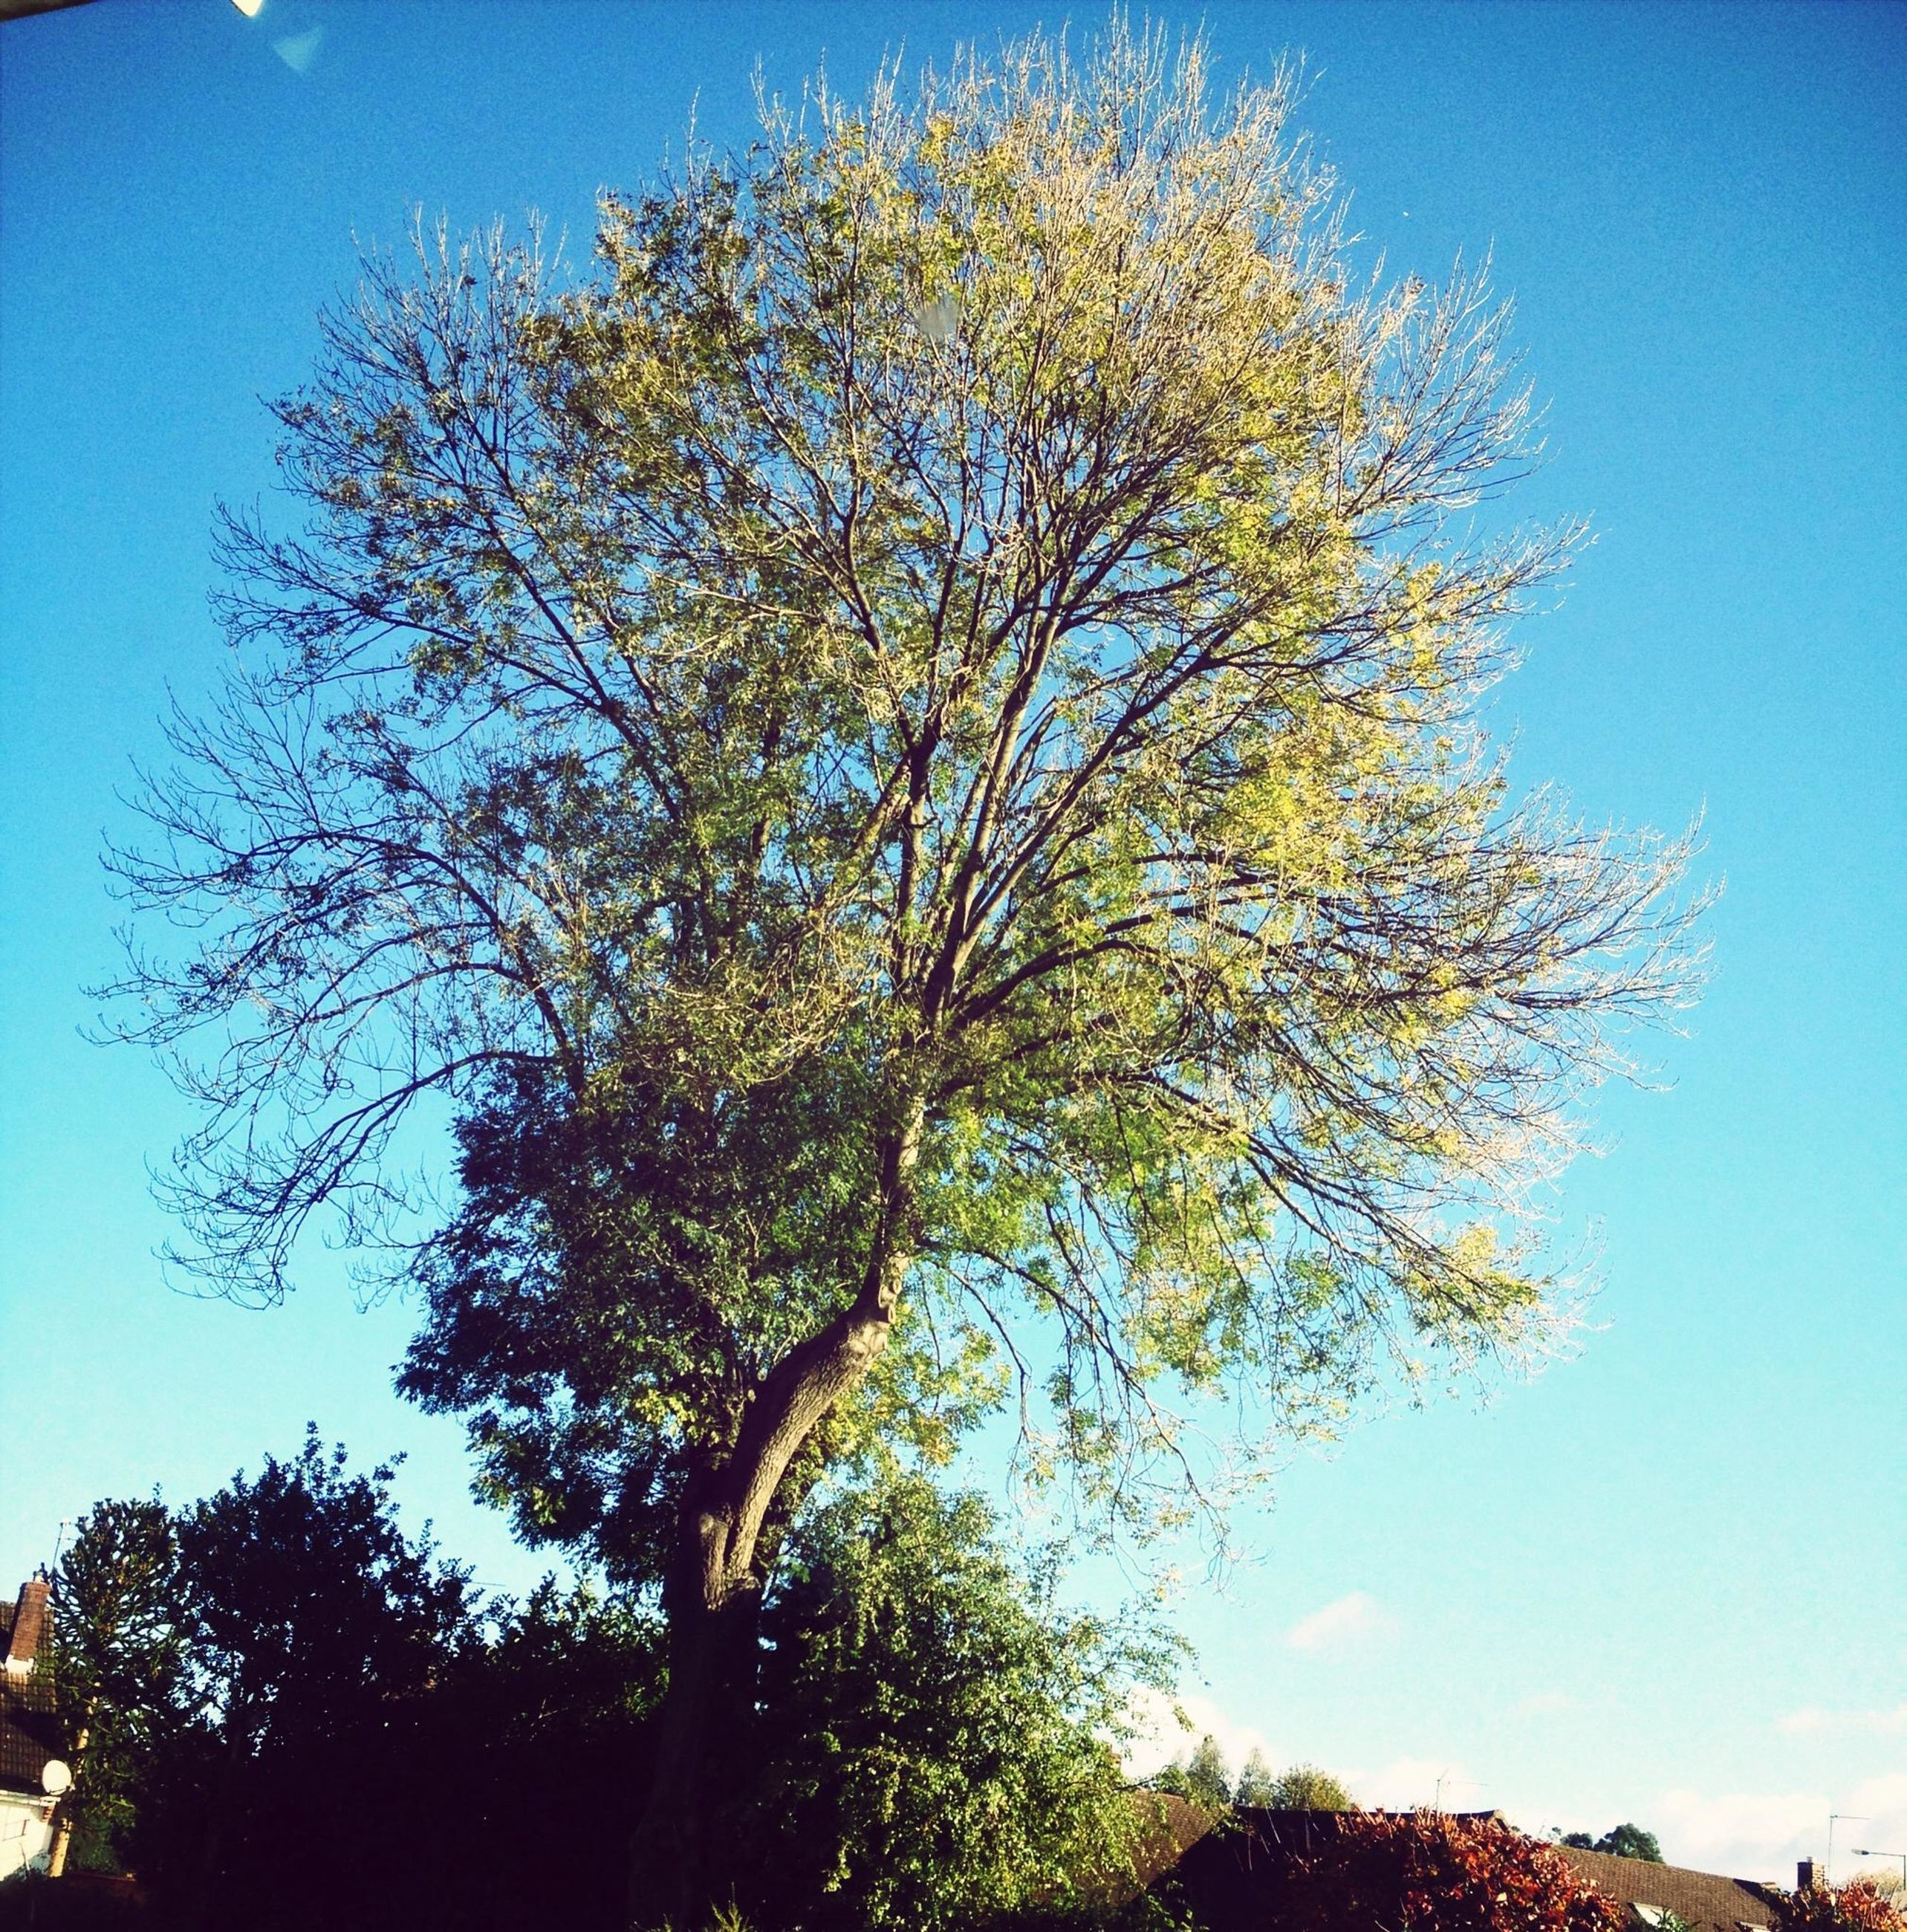 tree, low angle view, blue, clear sky, branch, growth, nature, beauty in nature, tranquility, sunlight, sky, day, no people, outdoors, scenics, high section, tranquil scene, treetop, built structure, tree trunk